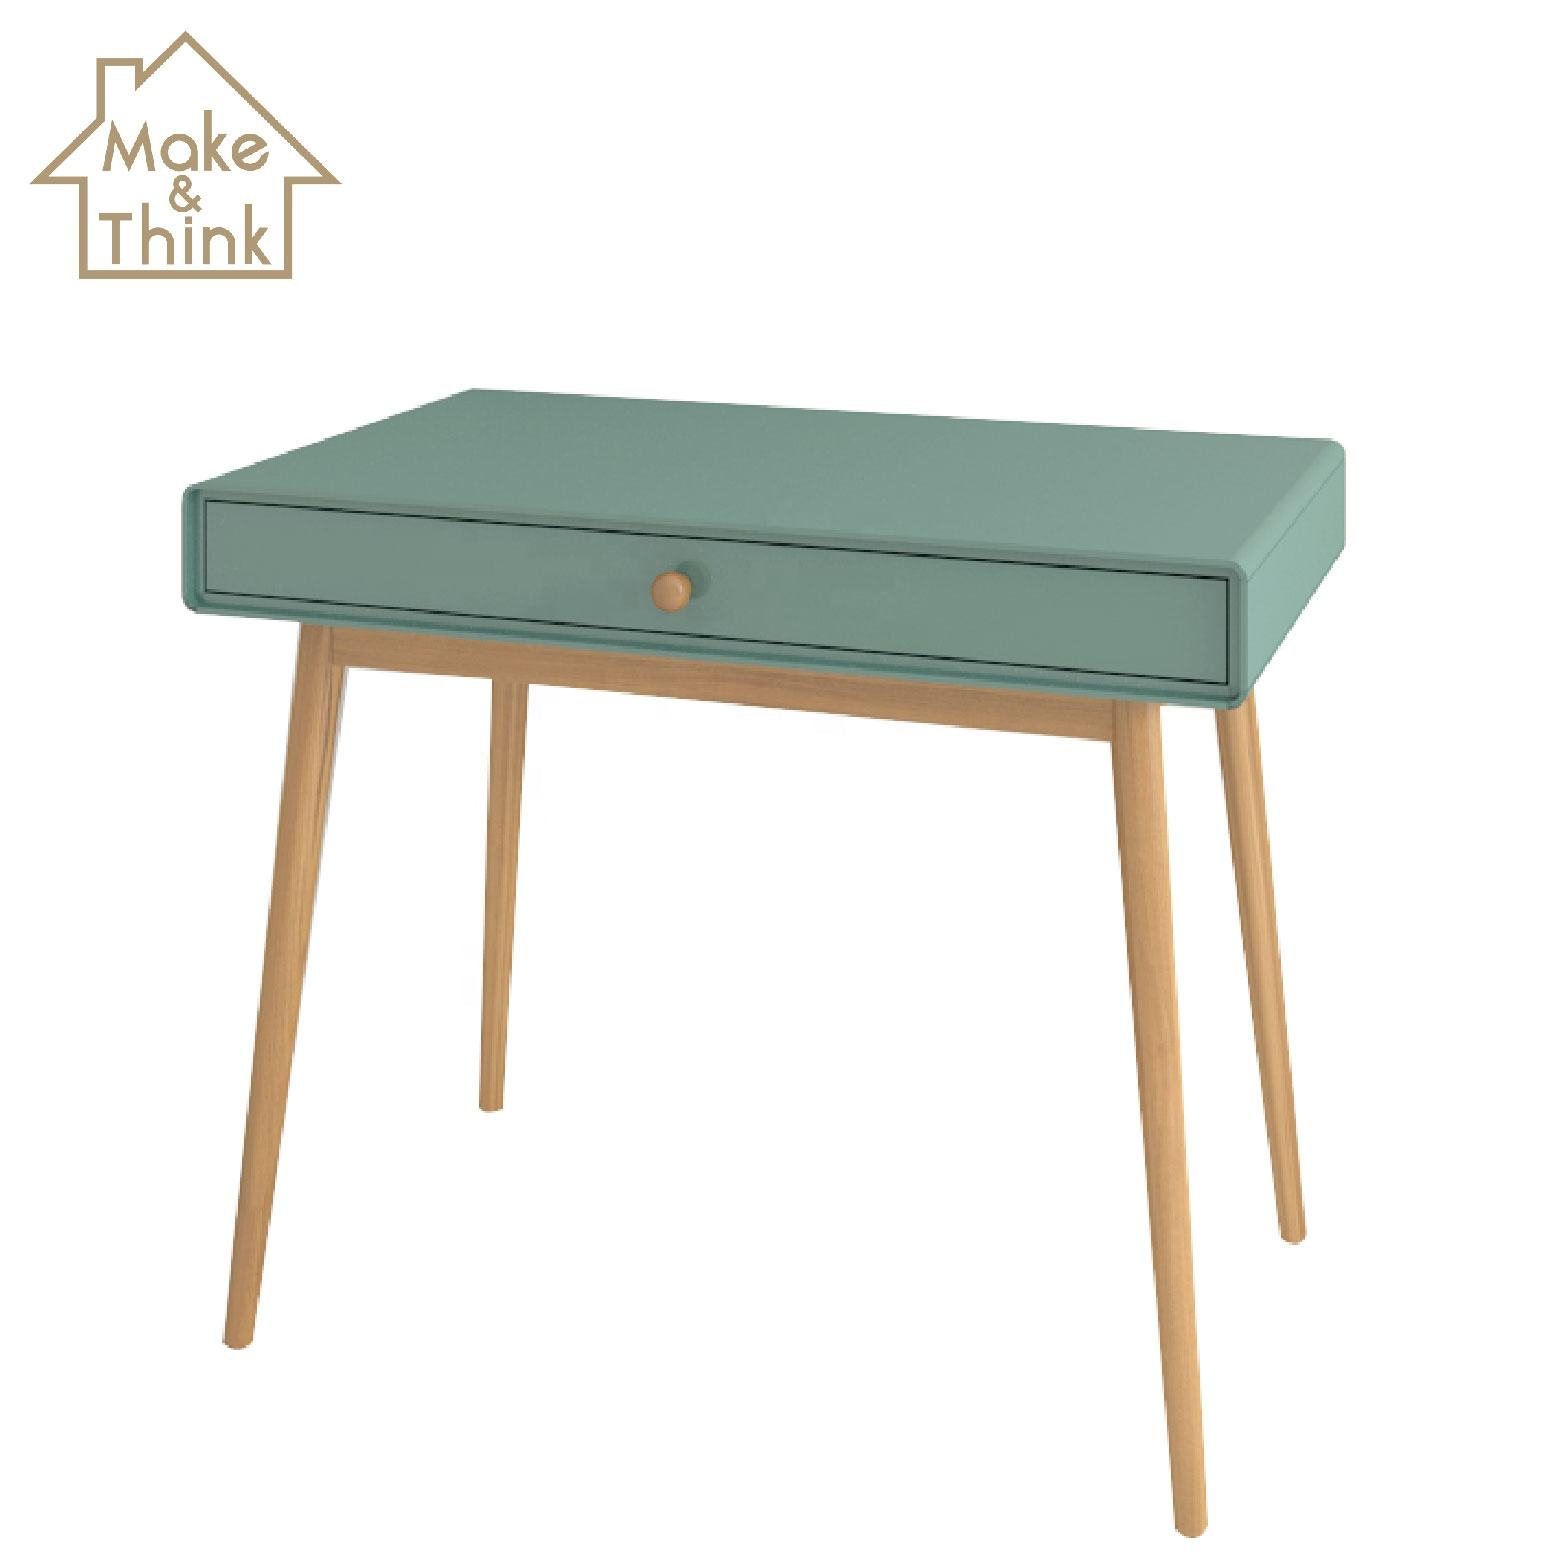 Simple solid wood furniture child study office desk mesa de trabalho with drawers